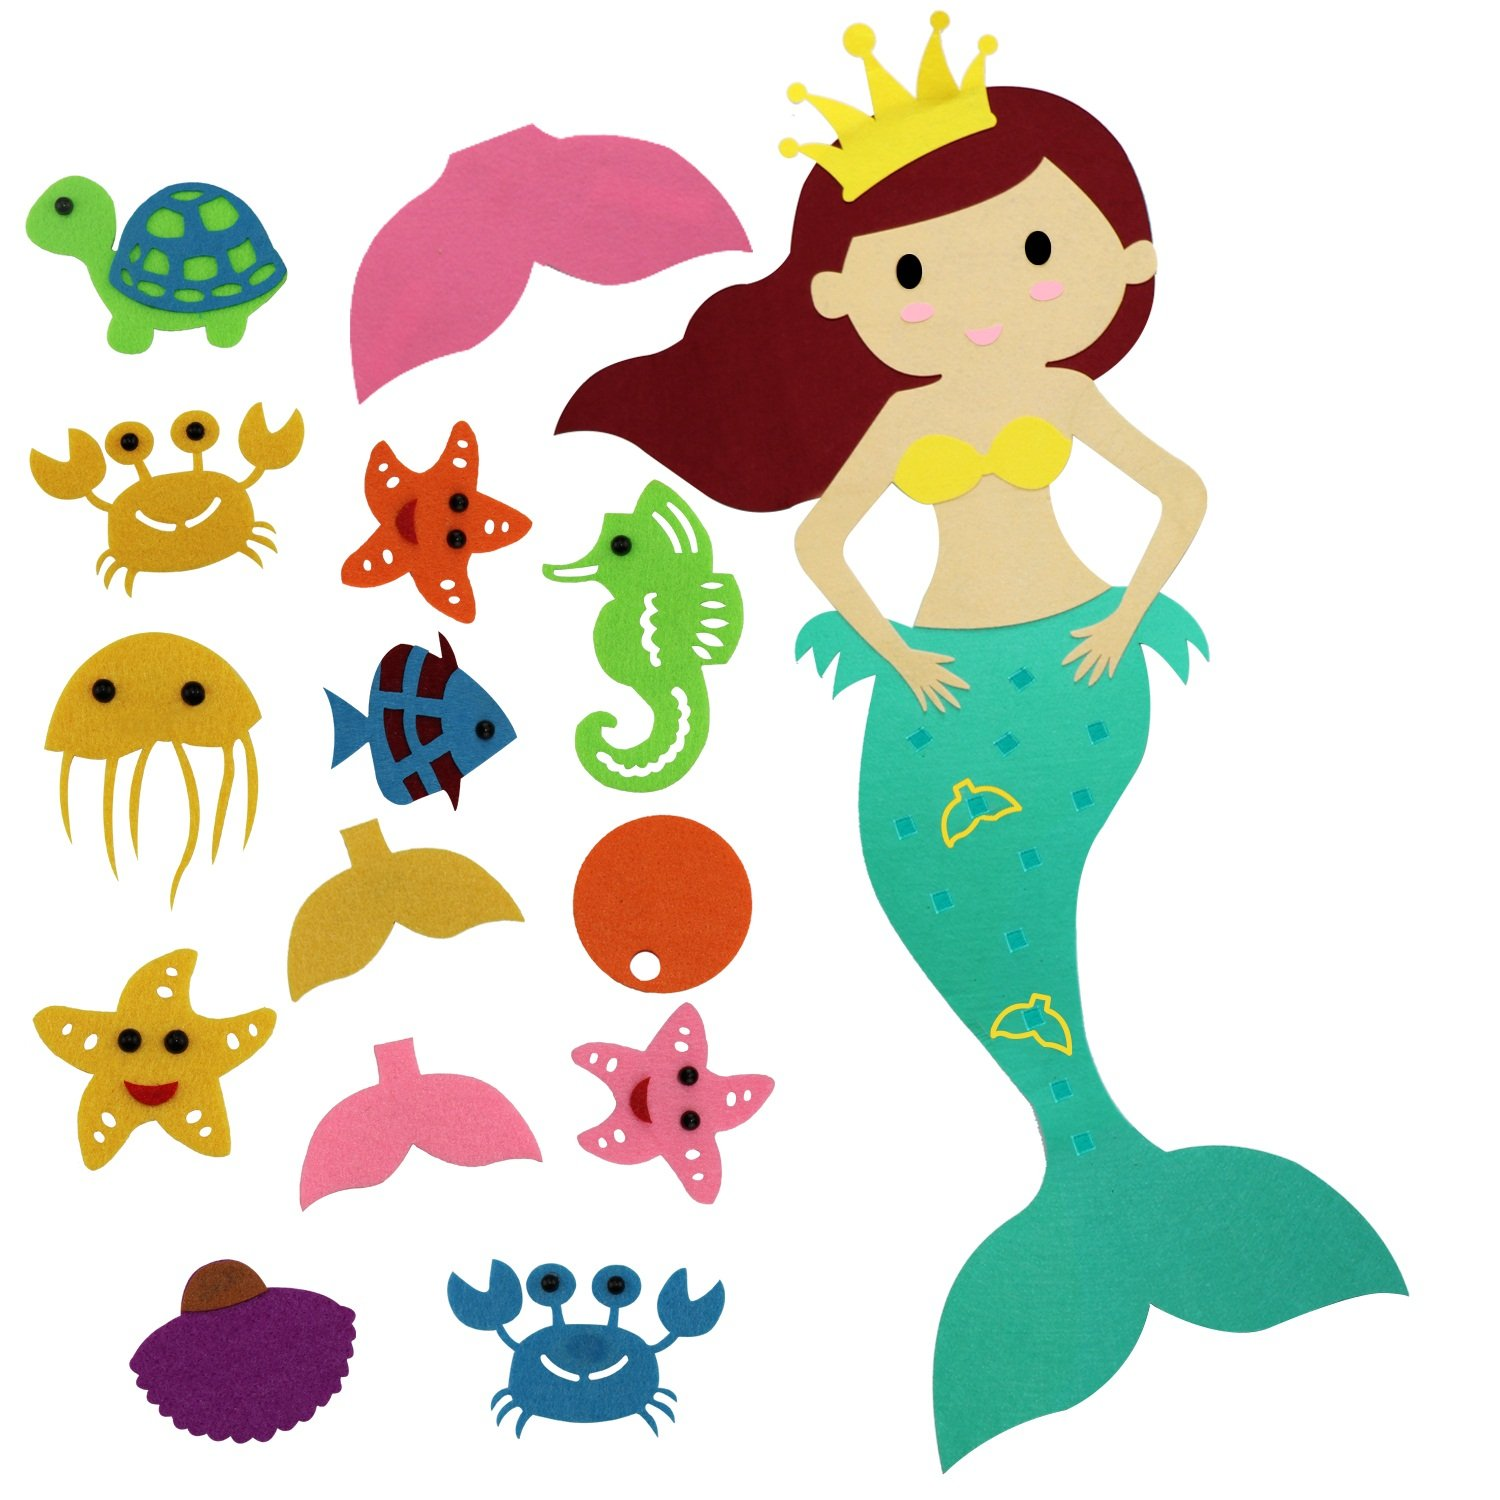 Faylapa Pin the Tail on the Mermaid Party Game with Felt Detachable Ornaments for Child Birthday Party Room Wall Hanging Decorations,14 Pcs DIY Ornaments,1 Pcs Mermaid Body(39.4inch X 17.3inch)